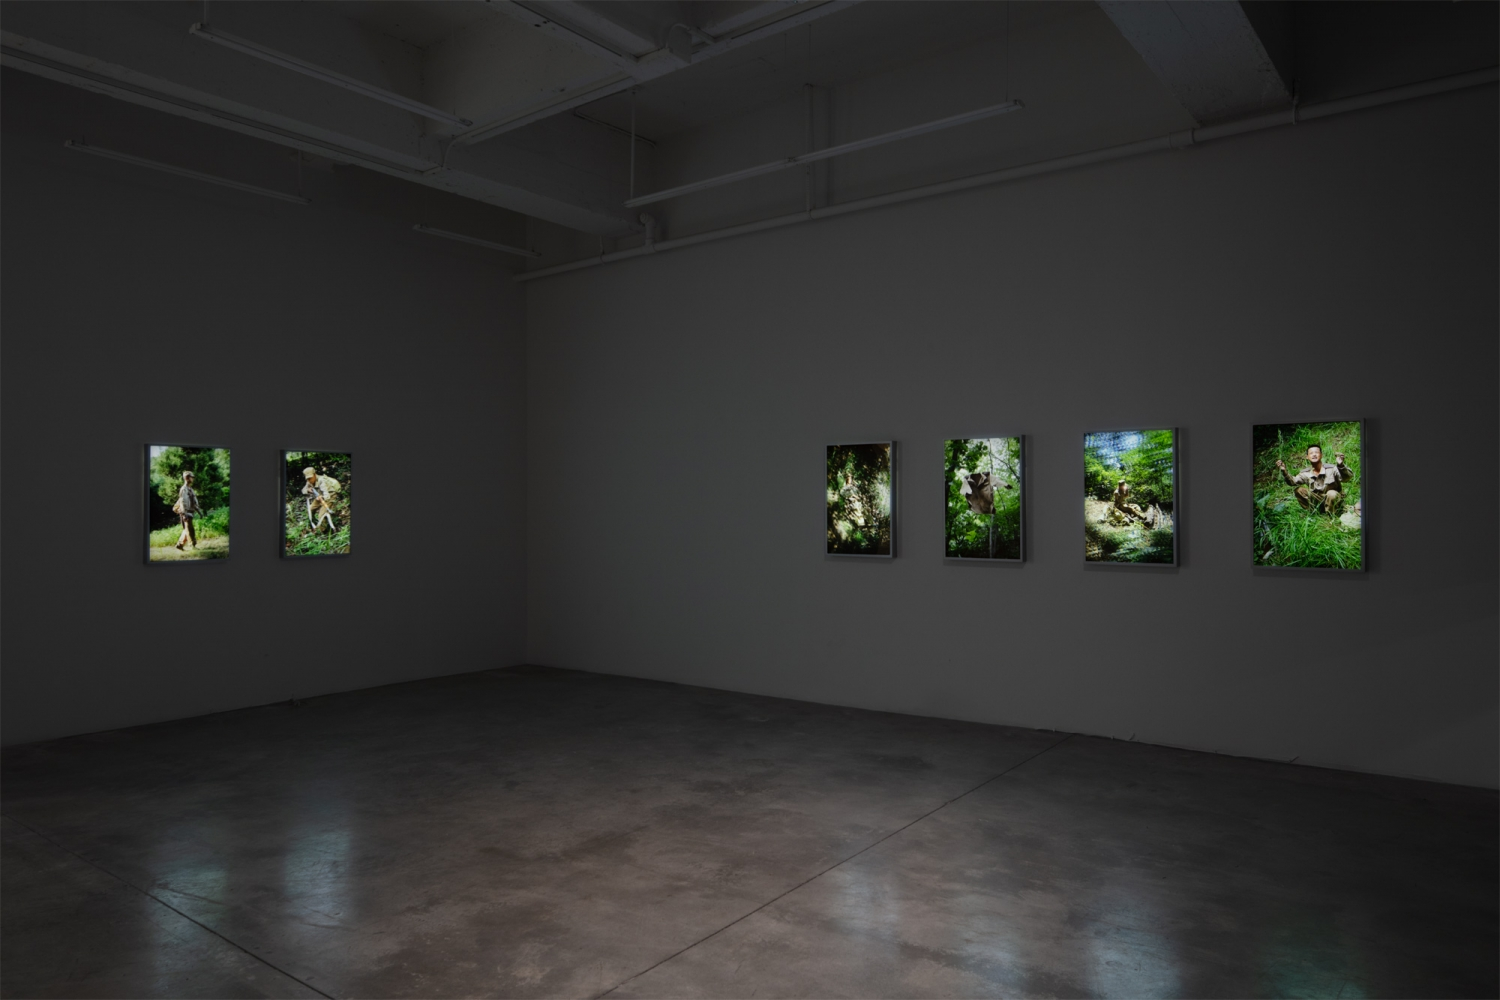 Park Chan-kyong (b.1965) Child Soldier, 2017-2018 Photo in light box 32.68 x 22.05 x 2.76 inches 83 x 56 x 7 cm Edition 1/5, 2 AP